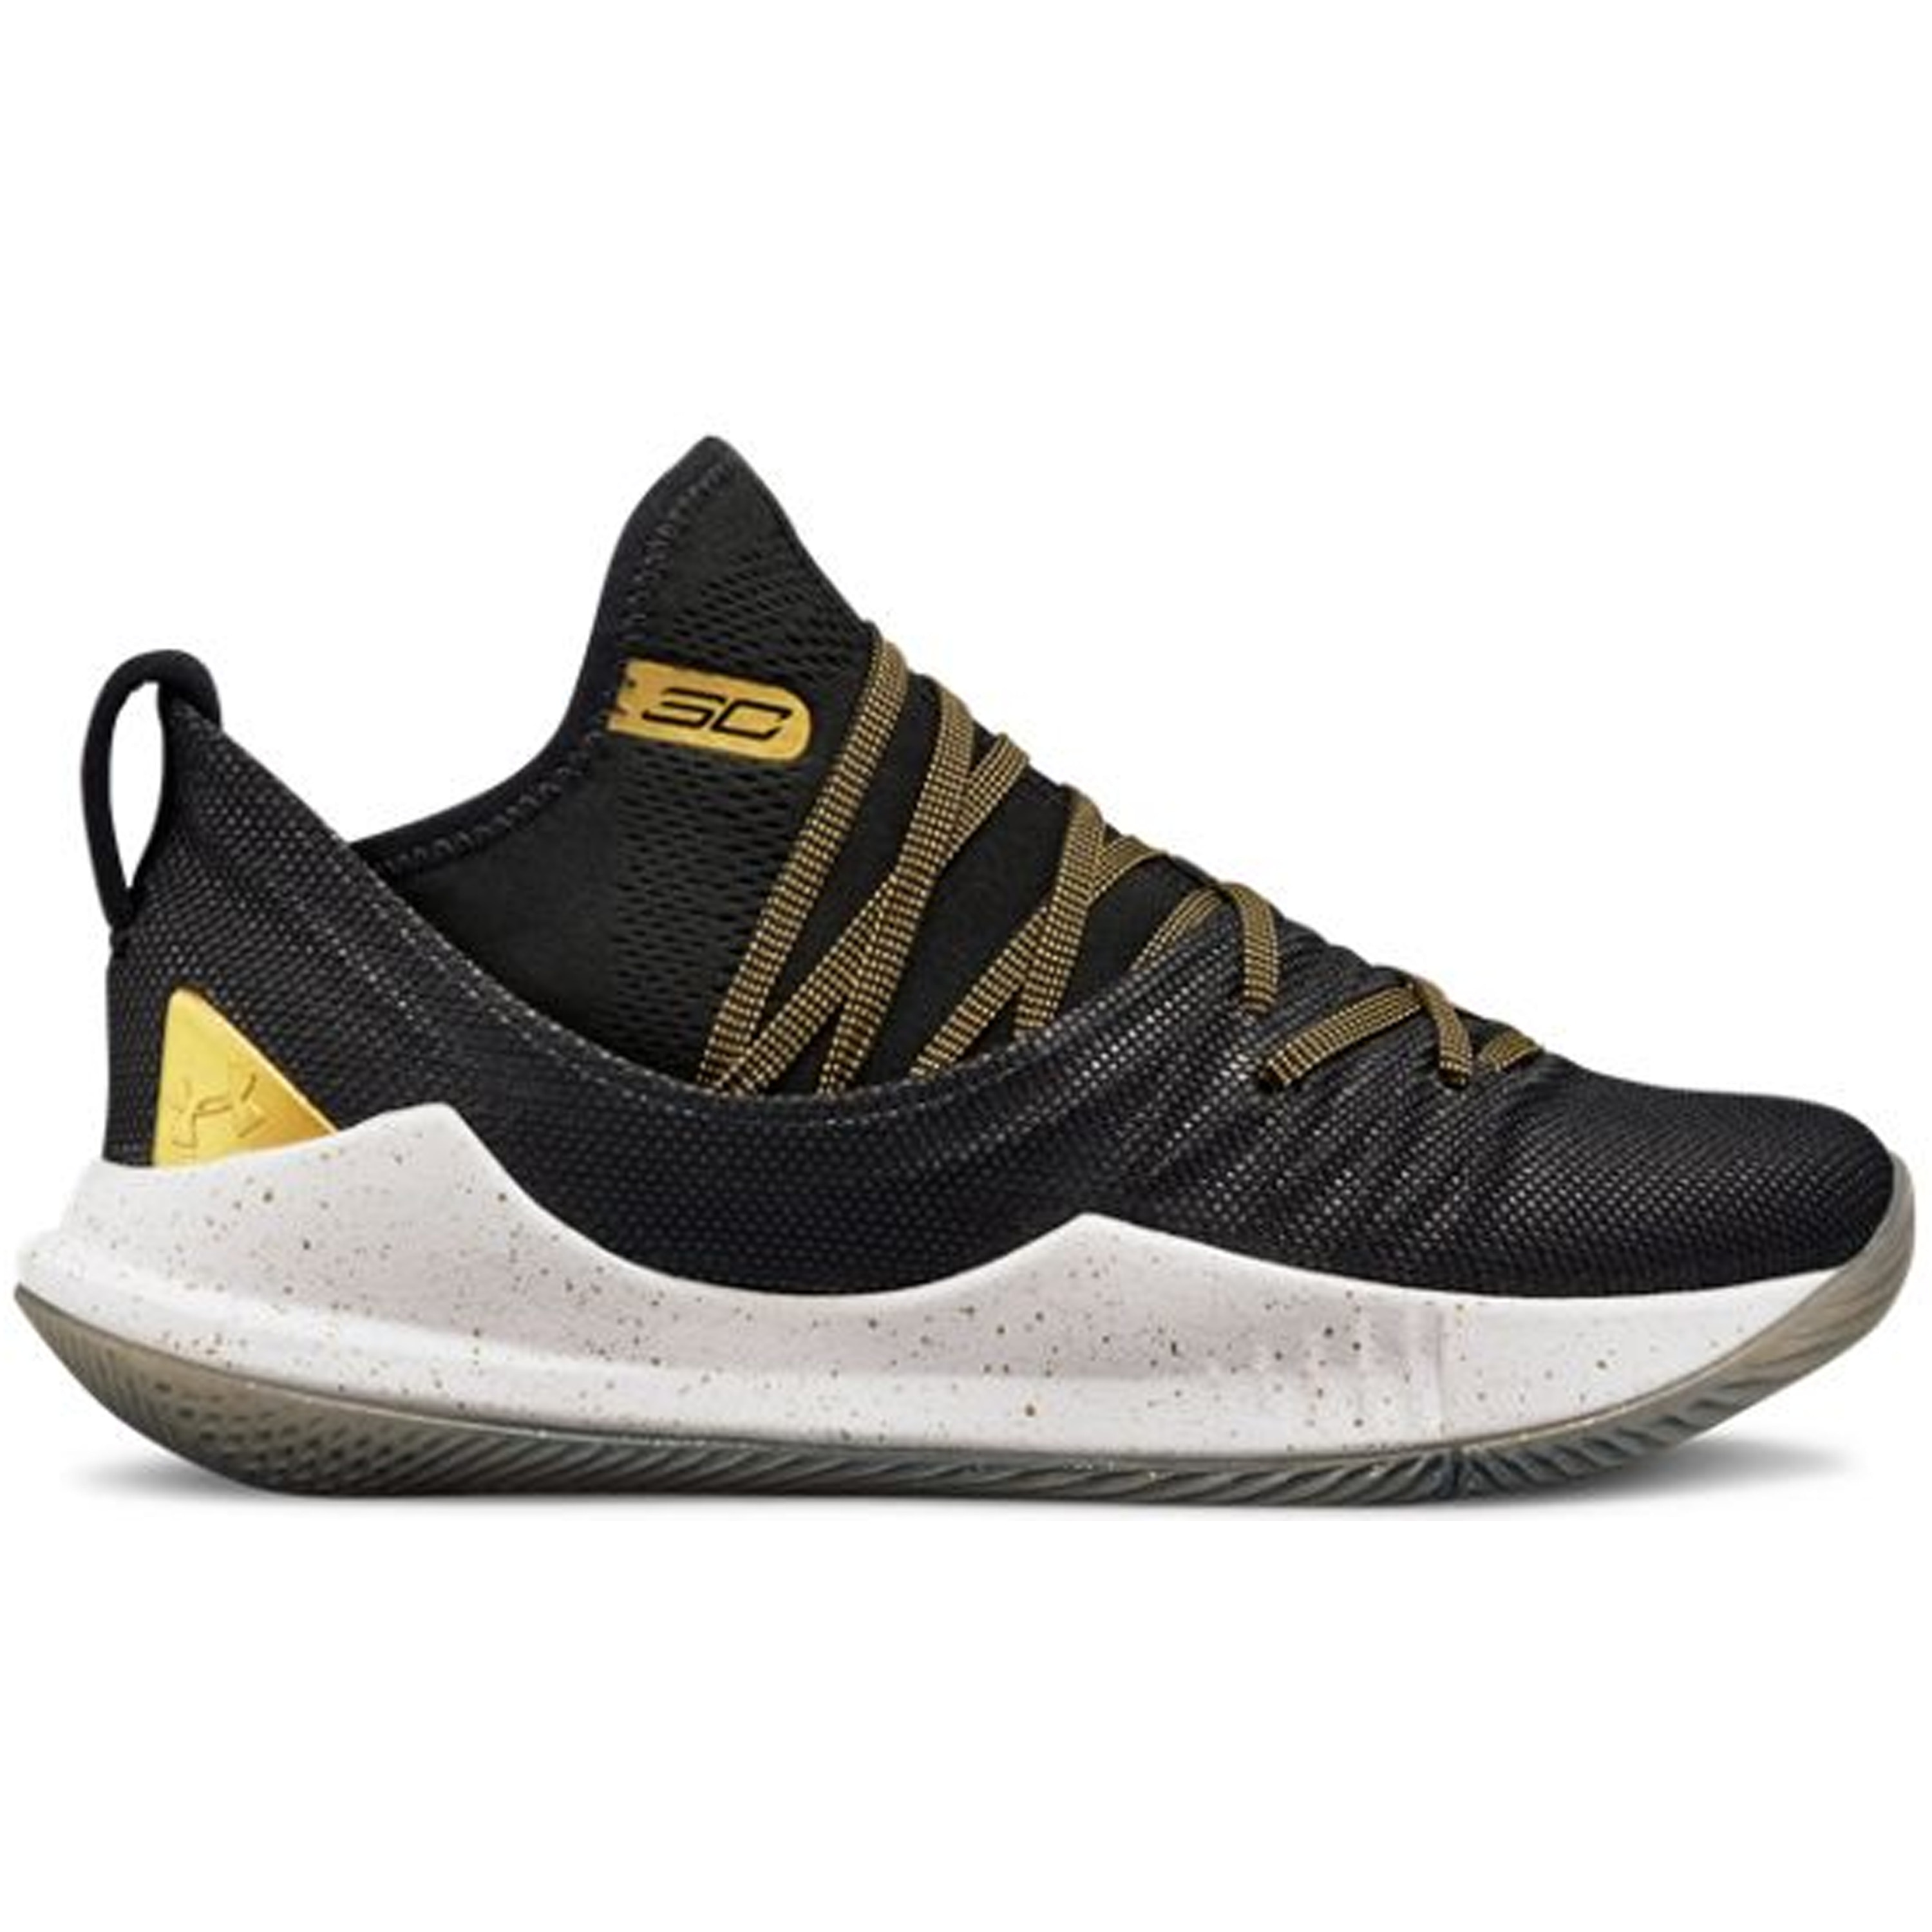 Under Armour Curry 5 Championship Pack Black (GS) (3020741-001)